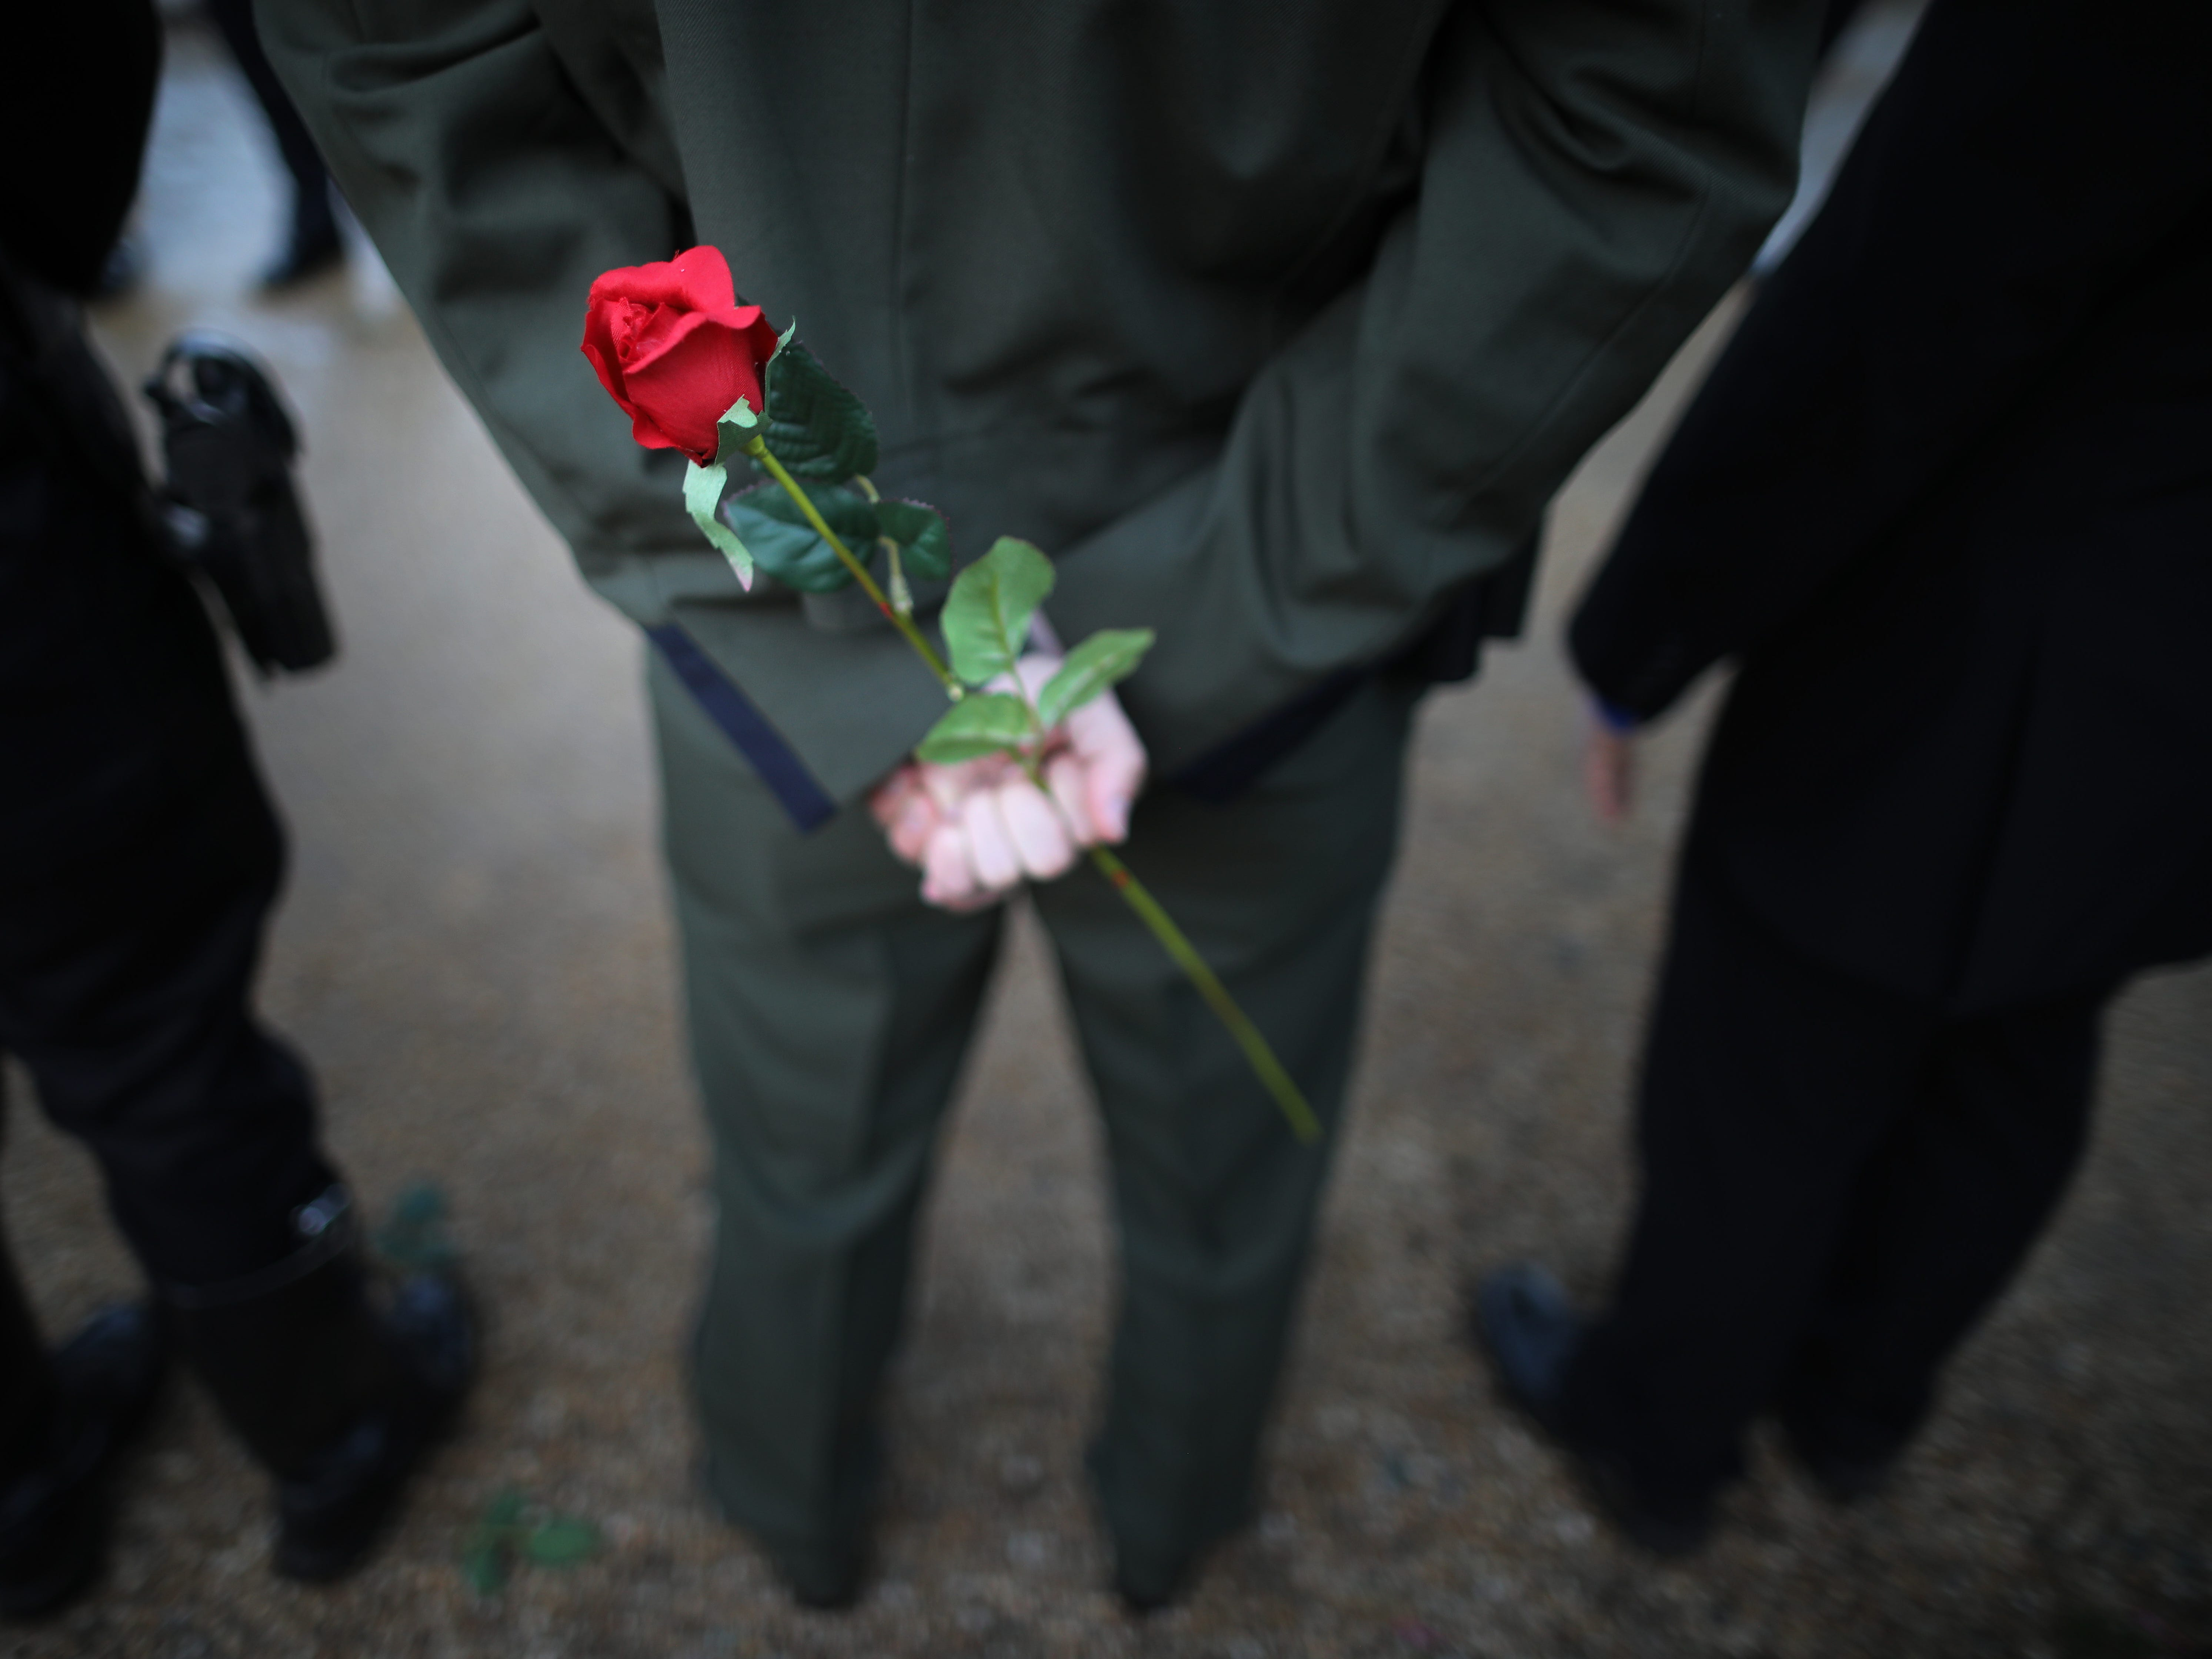 A law enforcement officer holds a rose to be given to family members of law enforcement officers who have died in the line of duty.